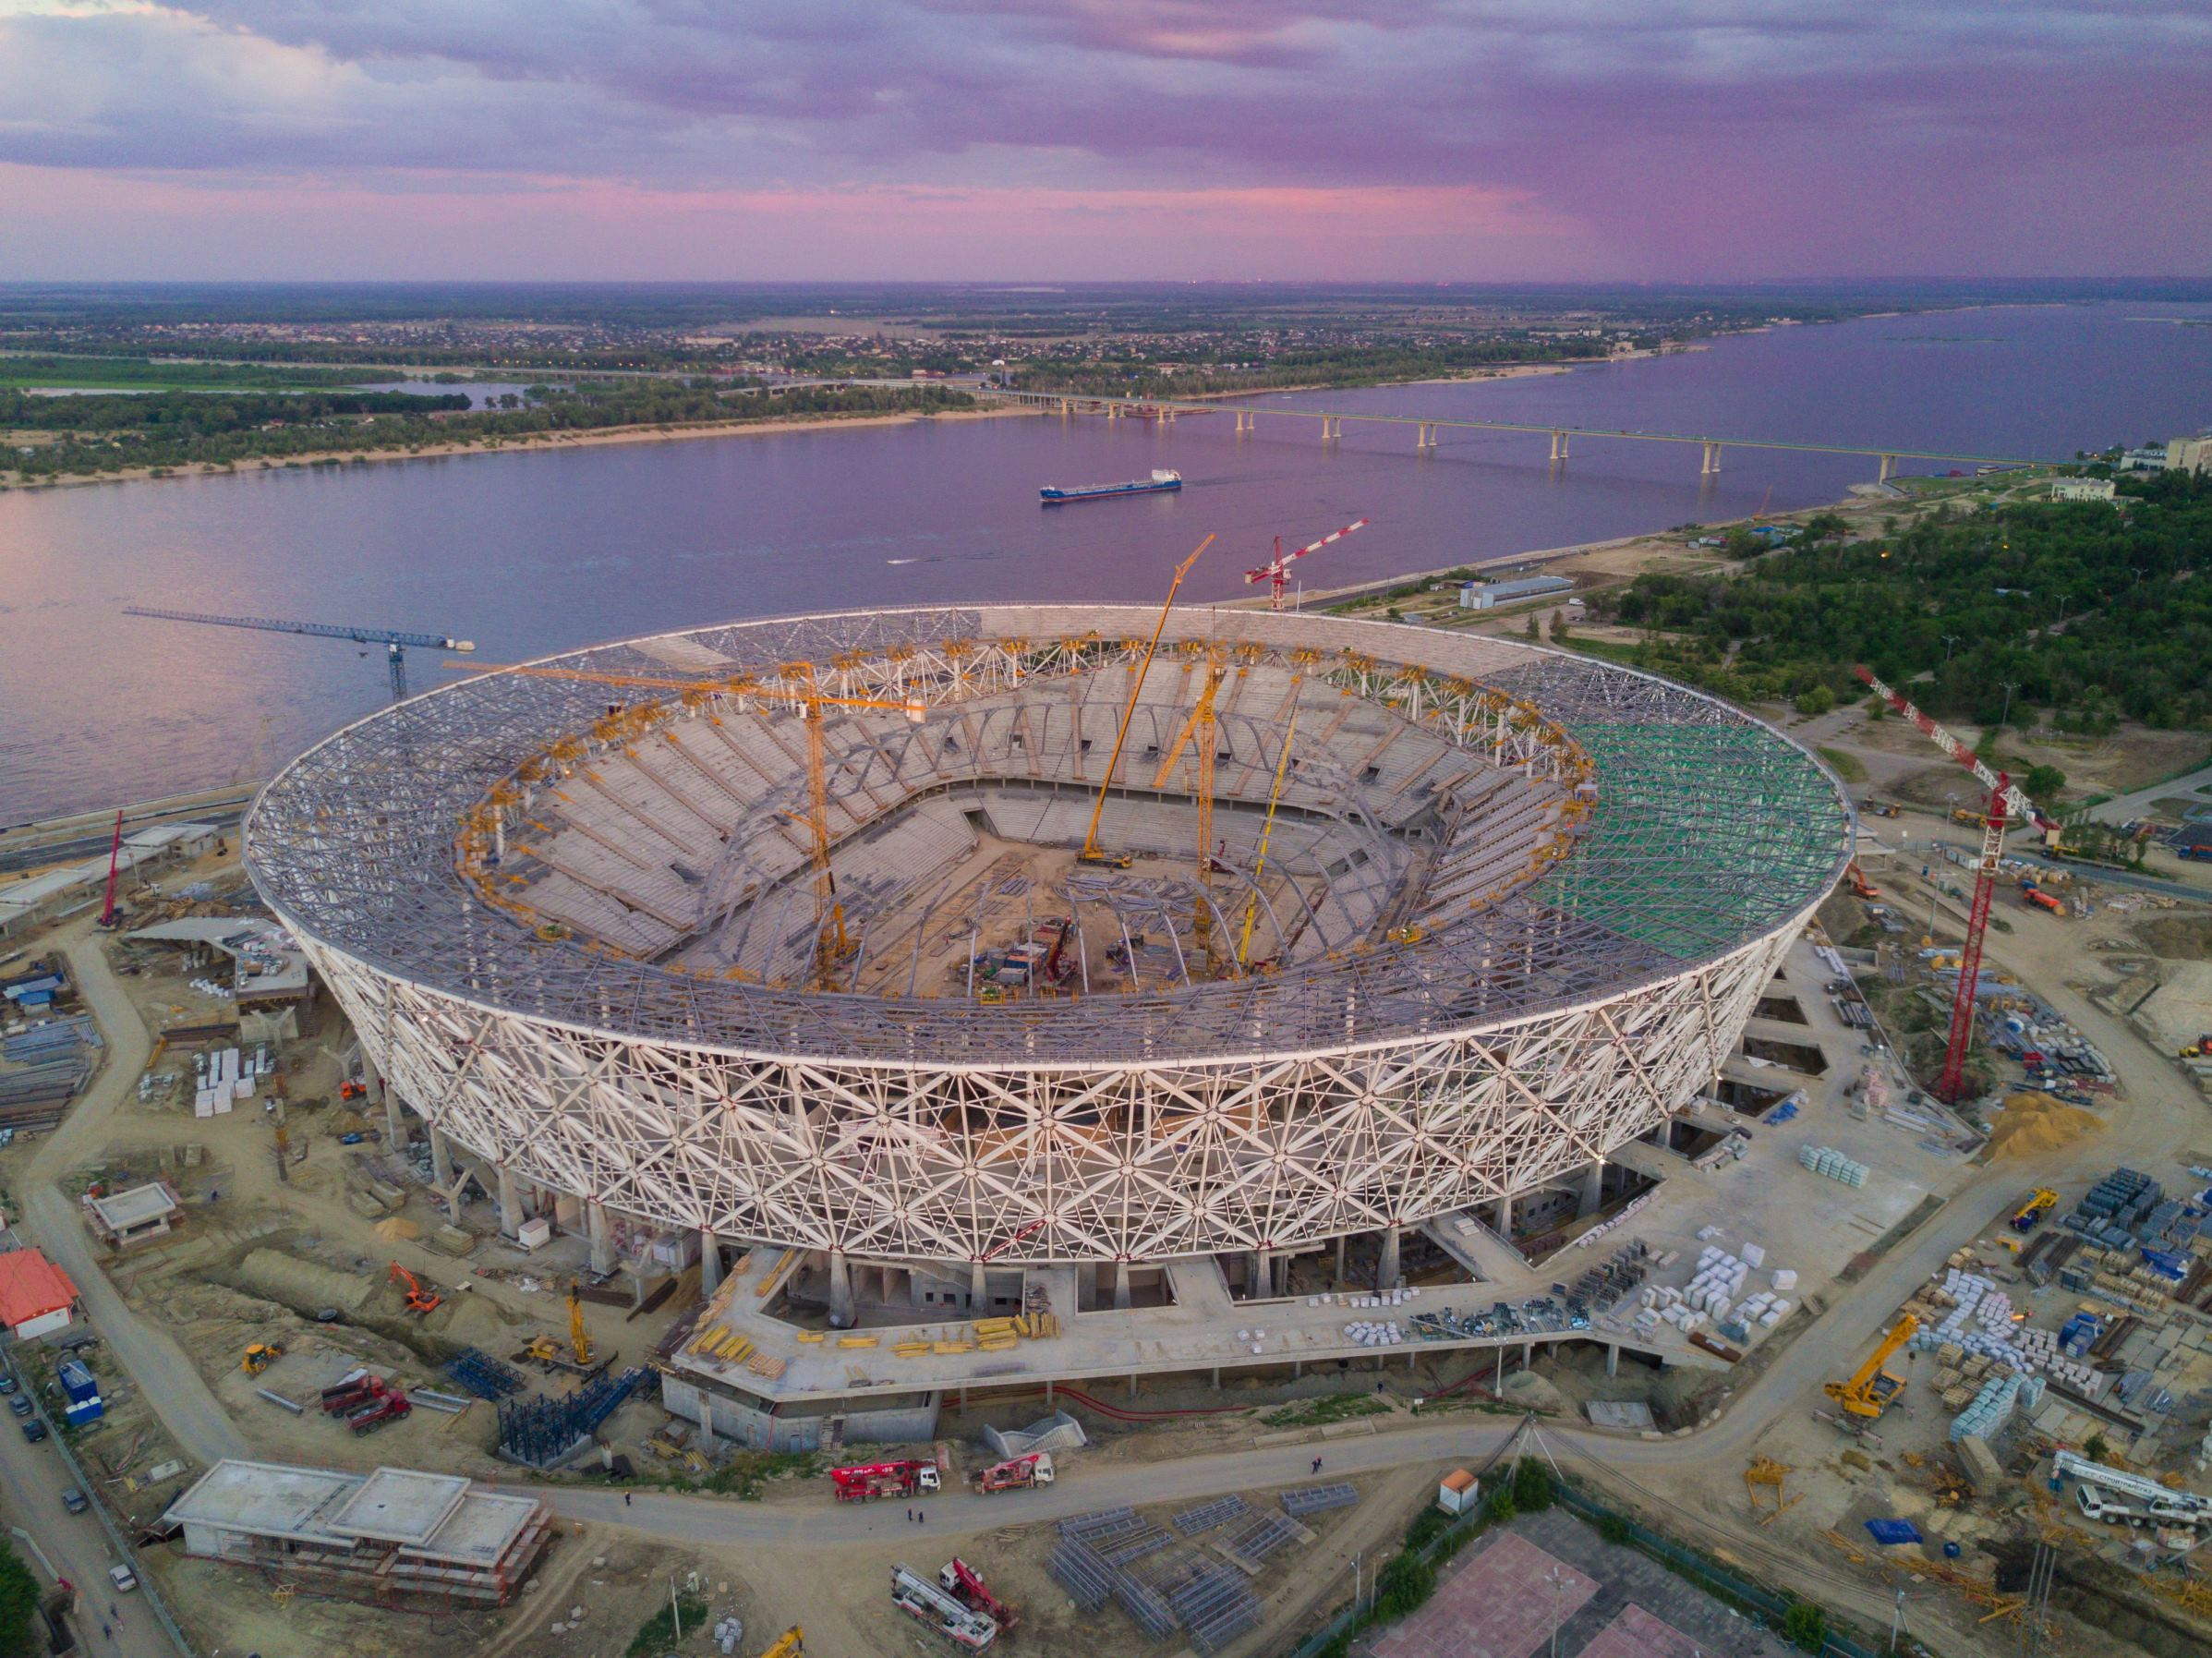 Slide 99 of 100: An aerial picture taken with a drone on June 20, 2017 shows the Volgograd Arena football stadium under construction for the 2018 FIFA World Cup, in Volgograd. / AFP PHOTO / Ruslan SHAMUKOV (Photo credit should read RUSLAN SHAMUKOV/AFP/Getty Images)